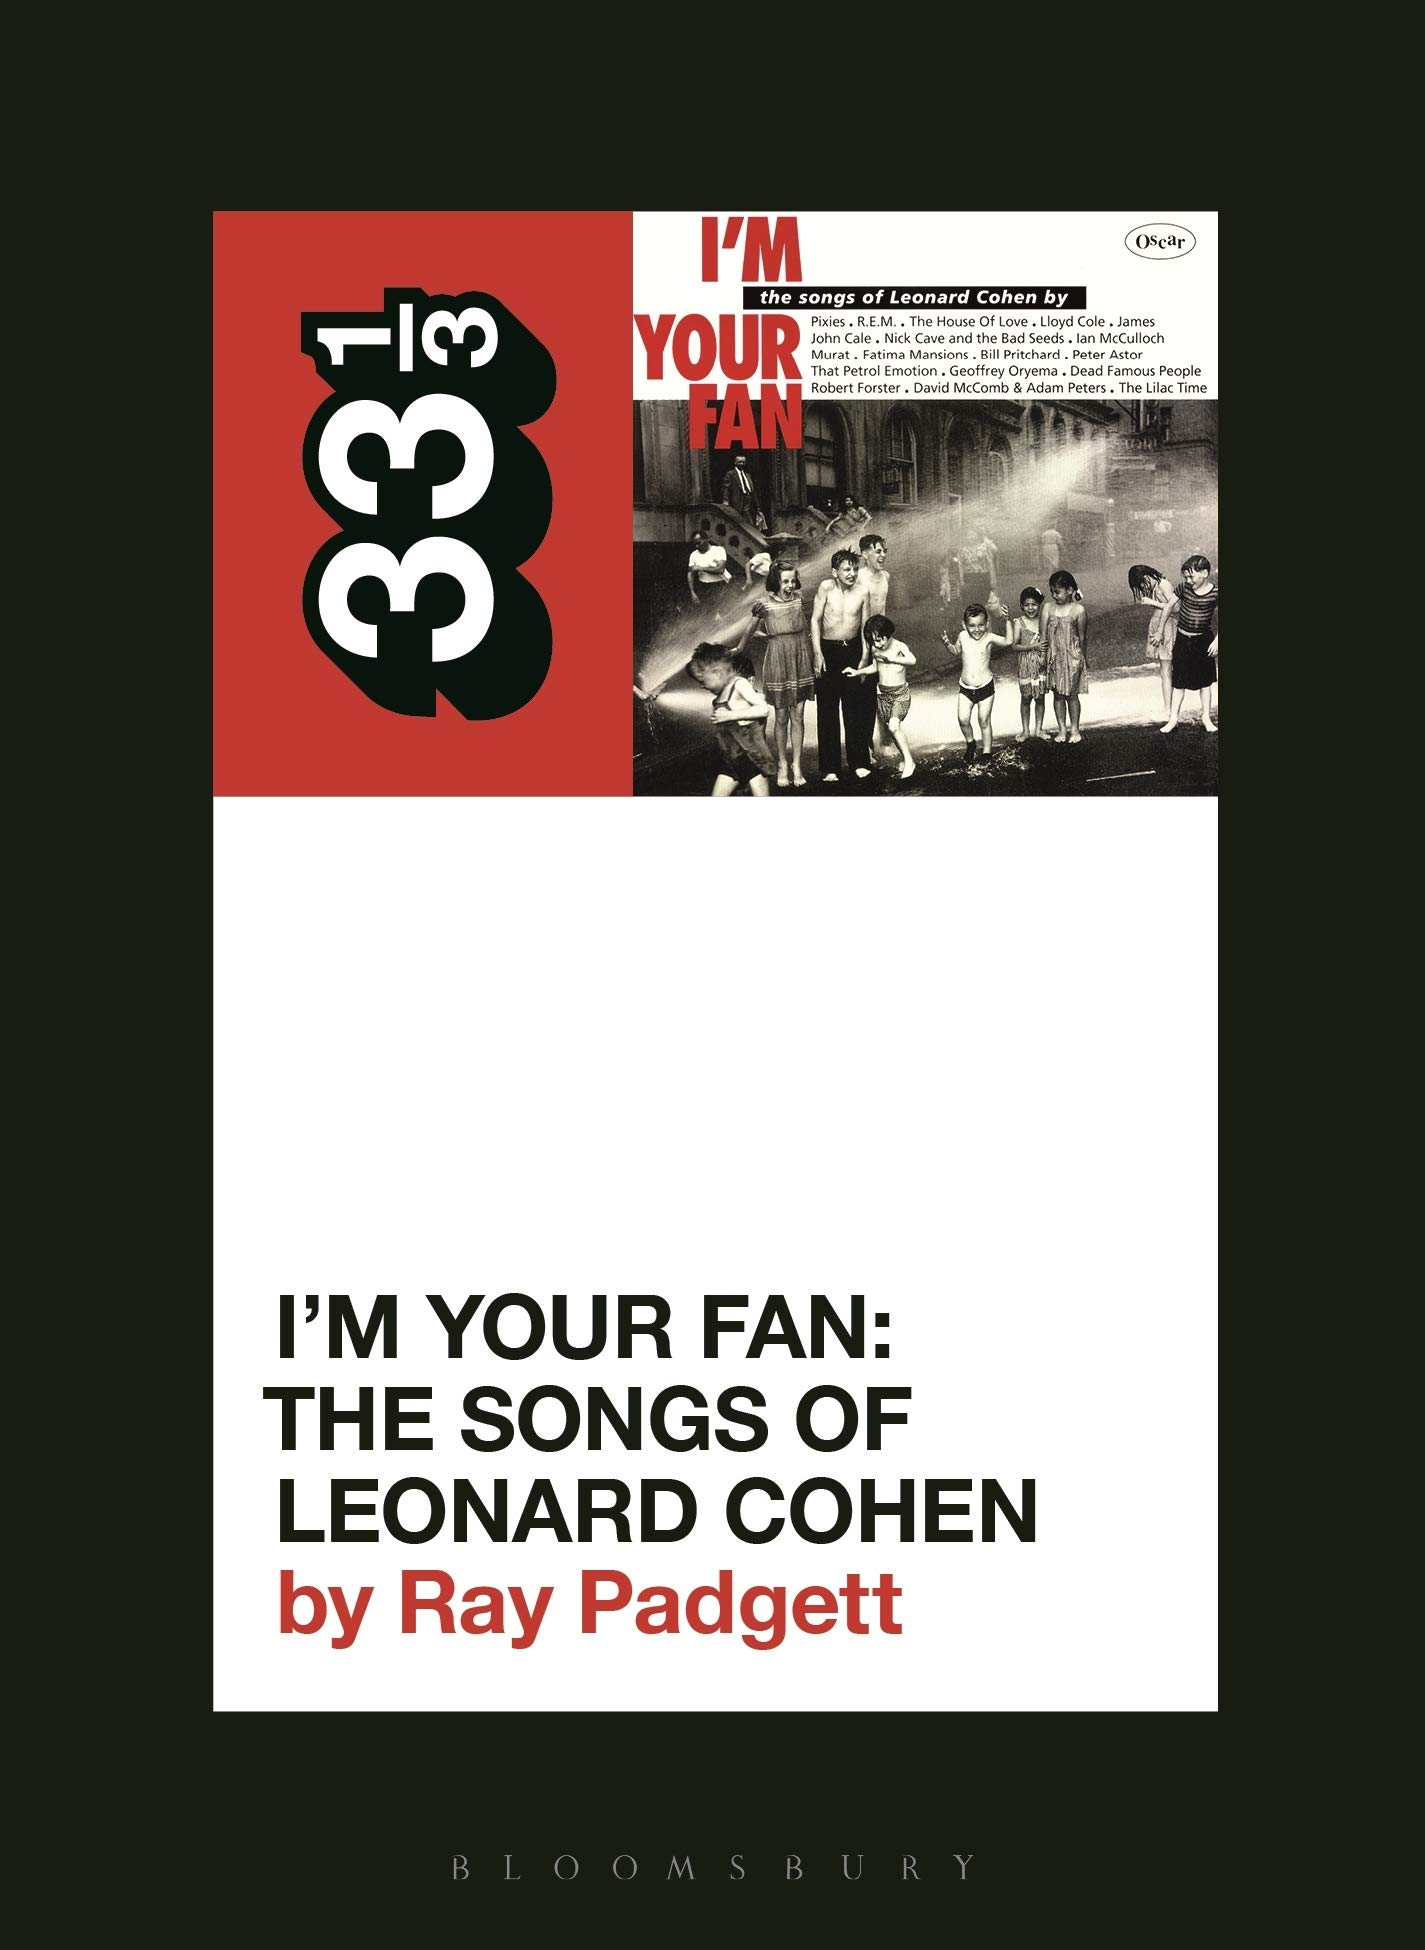 33 1/3 Book on Tribute Albums and Leonard Cohen by Cover Me's Founder